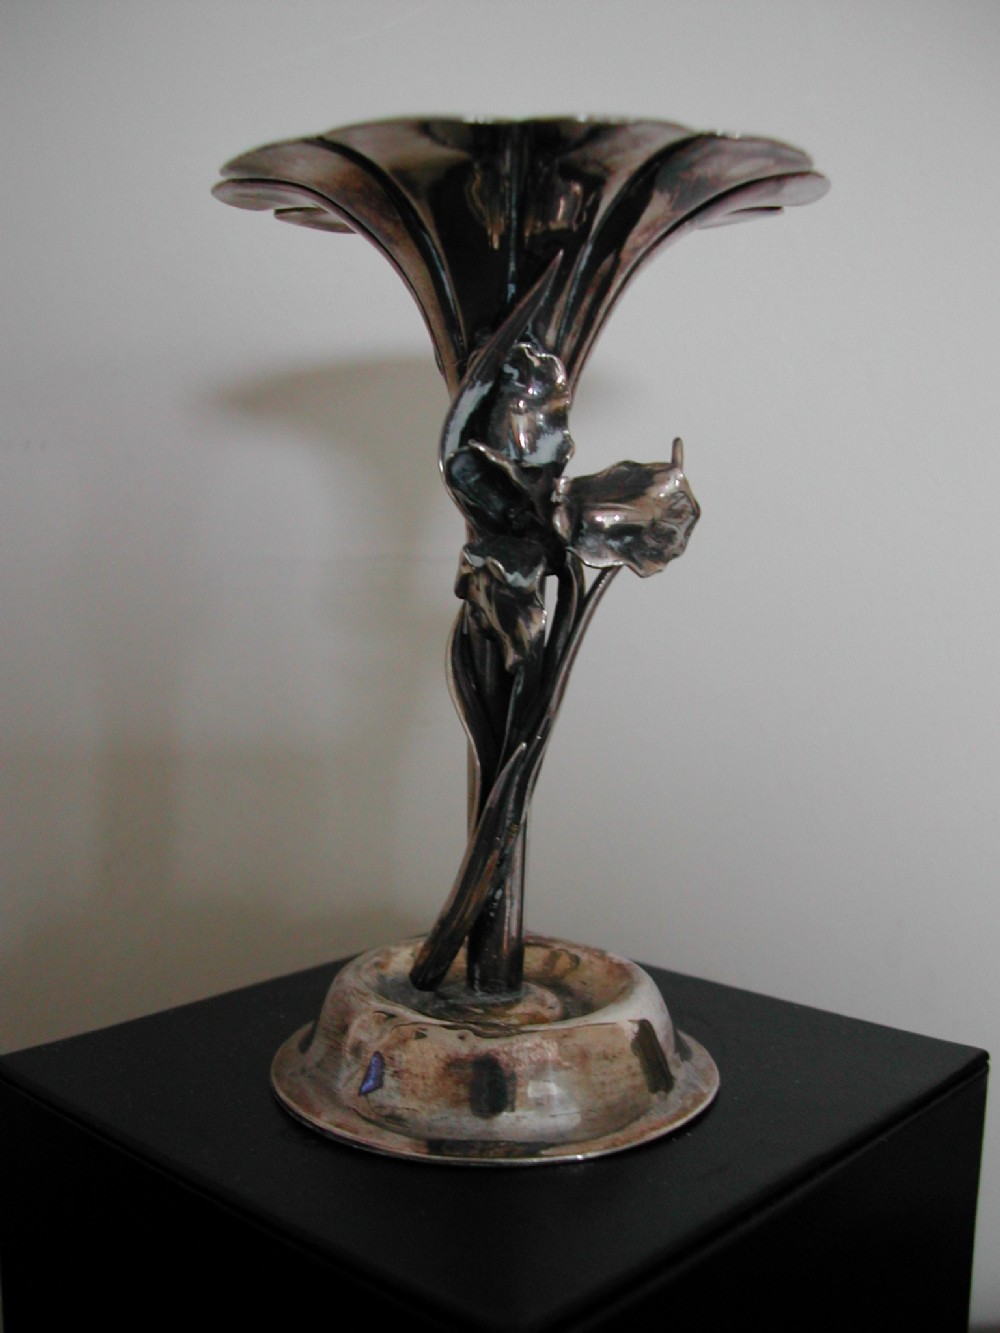 japanese silver organic iris spill vase dating to the meiji period